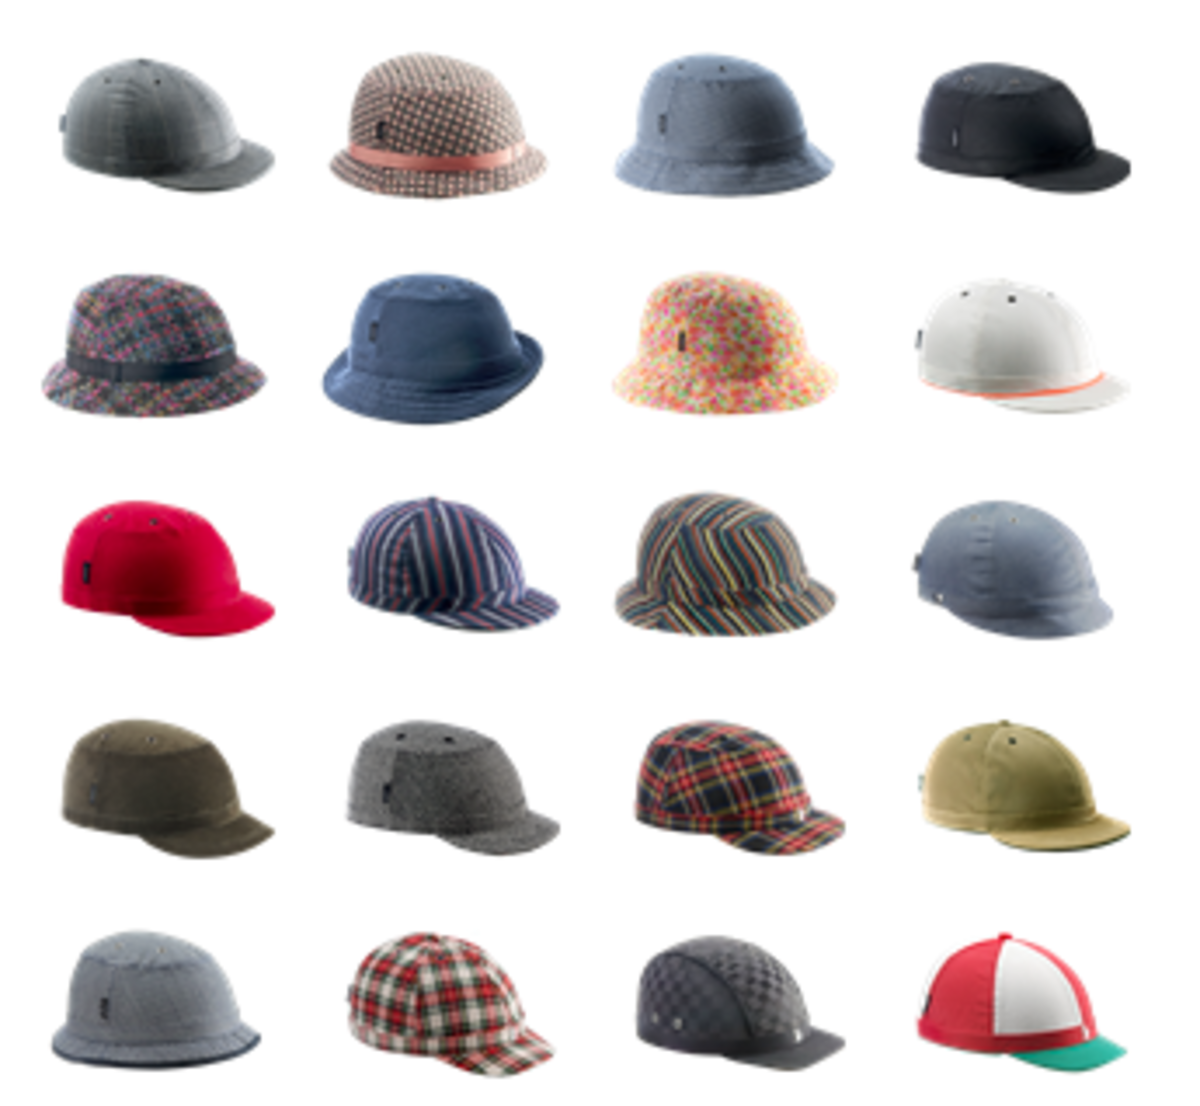 In the YAKKAY workshop, you can select from a wide variety of helmets (not shown) and covers.